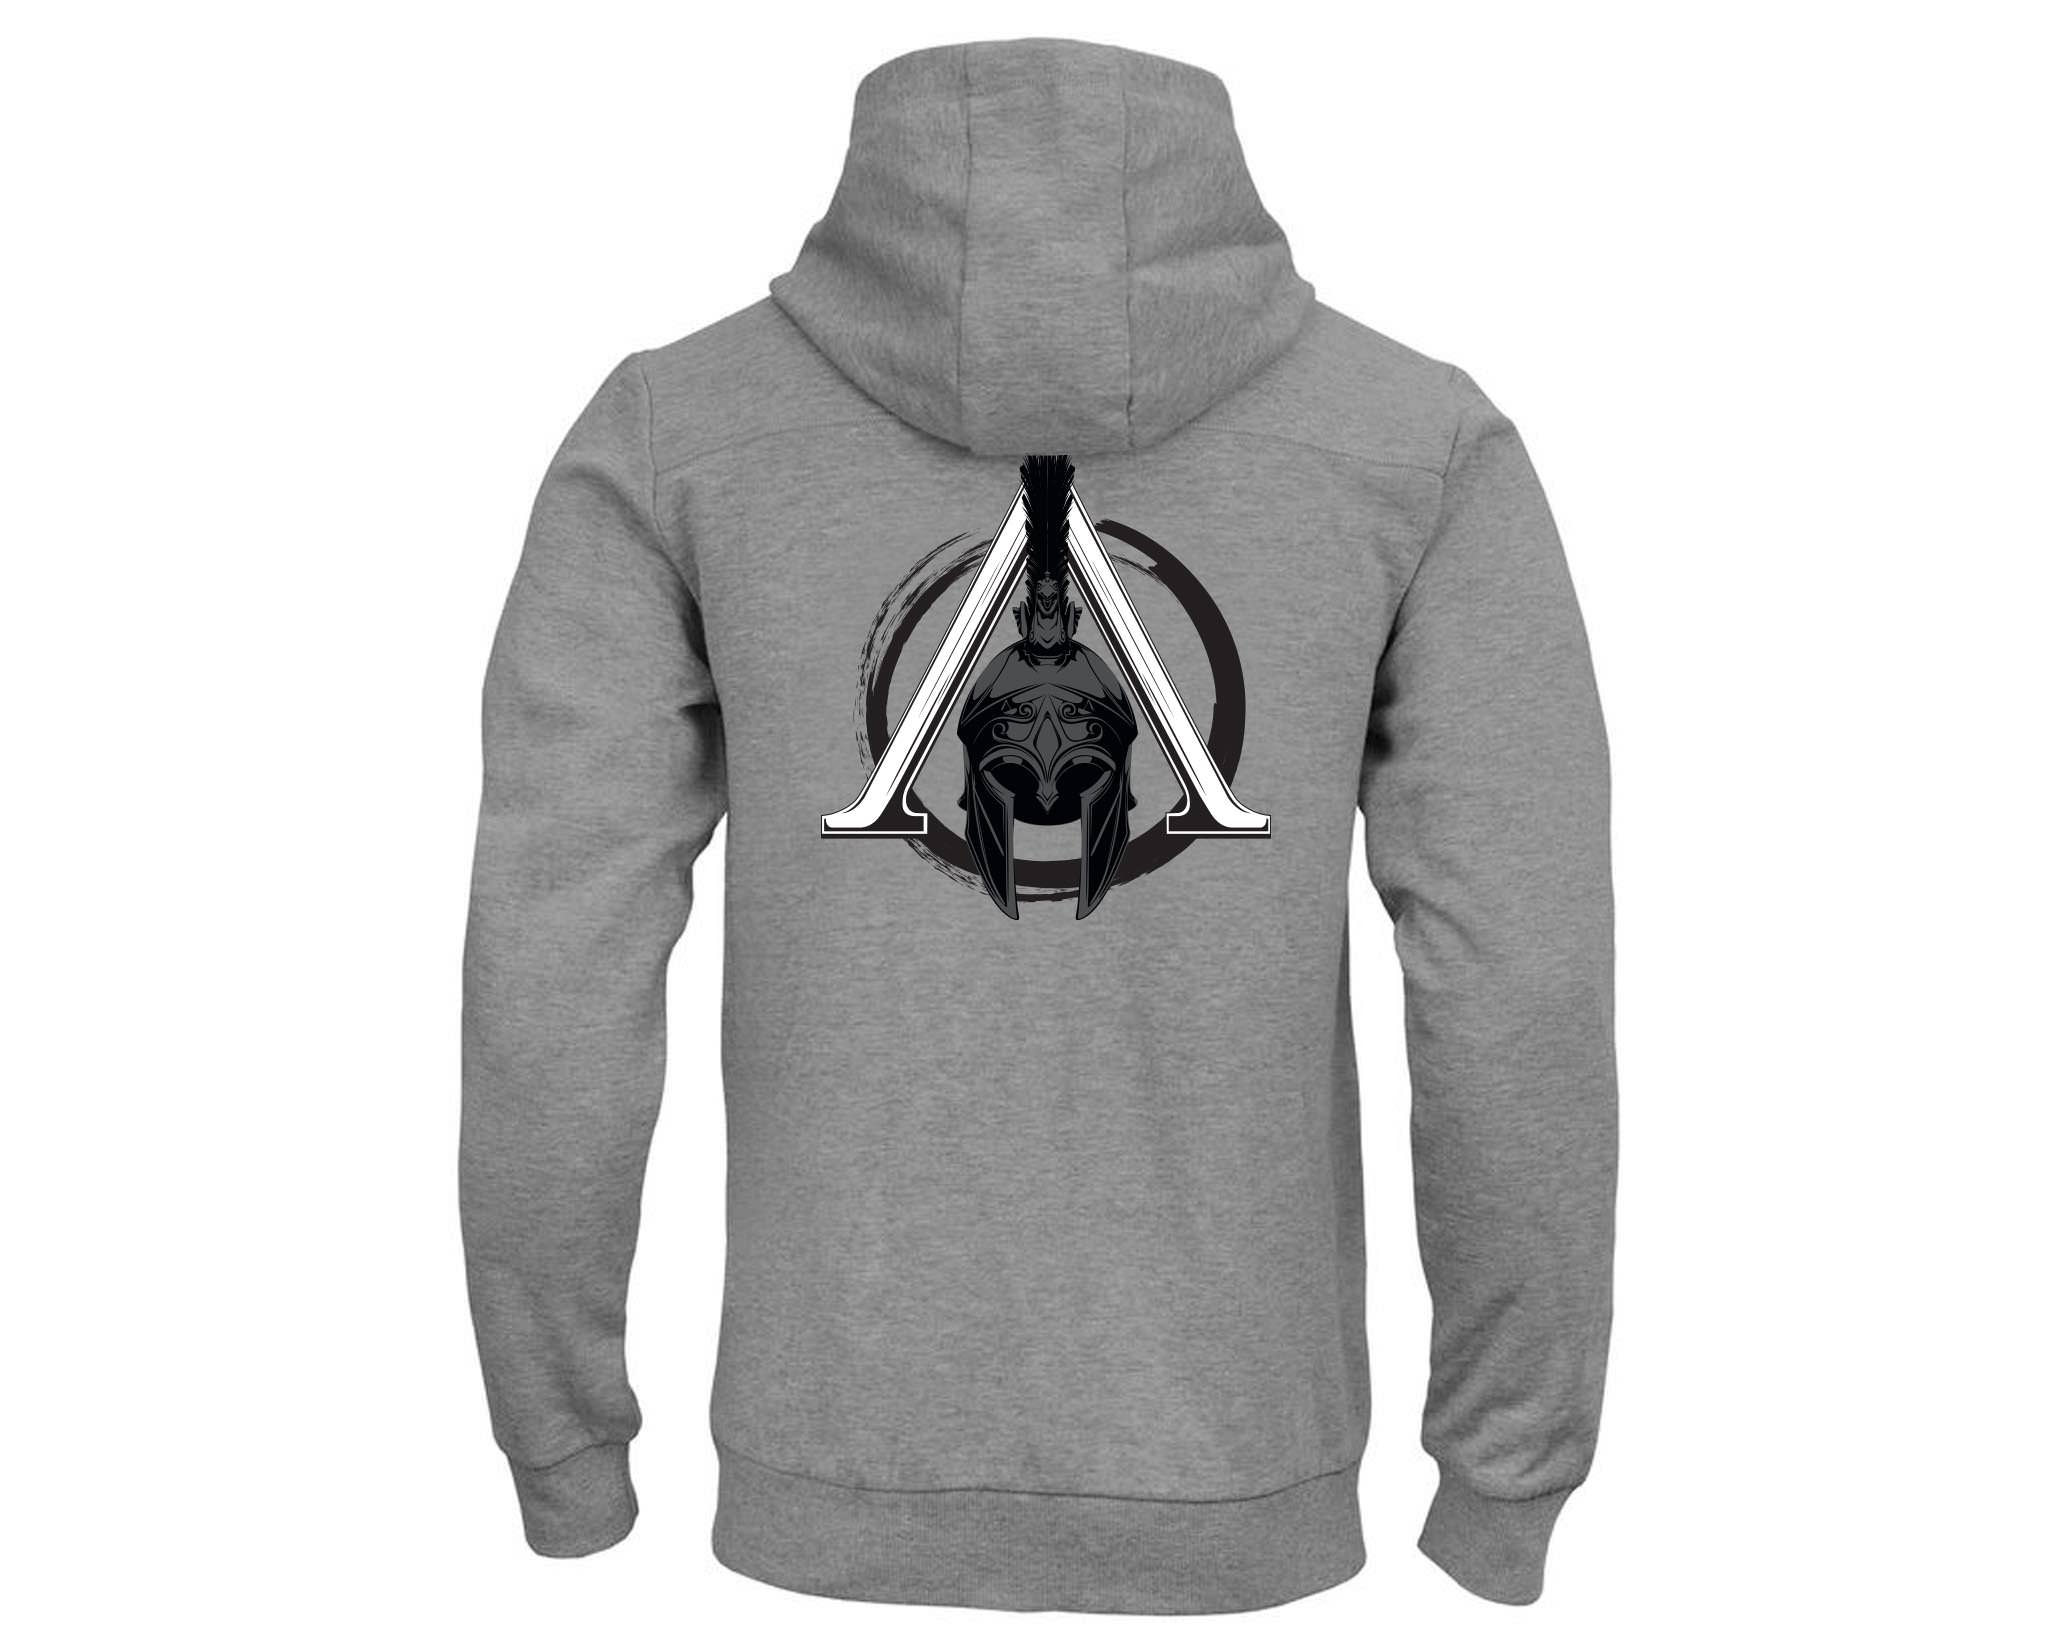 Spartan Ubisoft Creed Store Odyssey Assassin's Hoodie Qgyp5 IWDE29HY